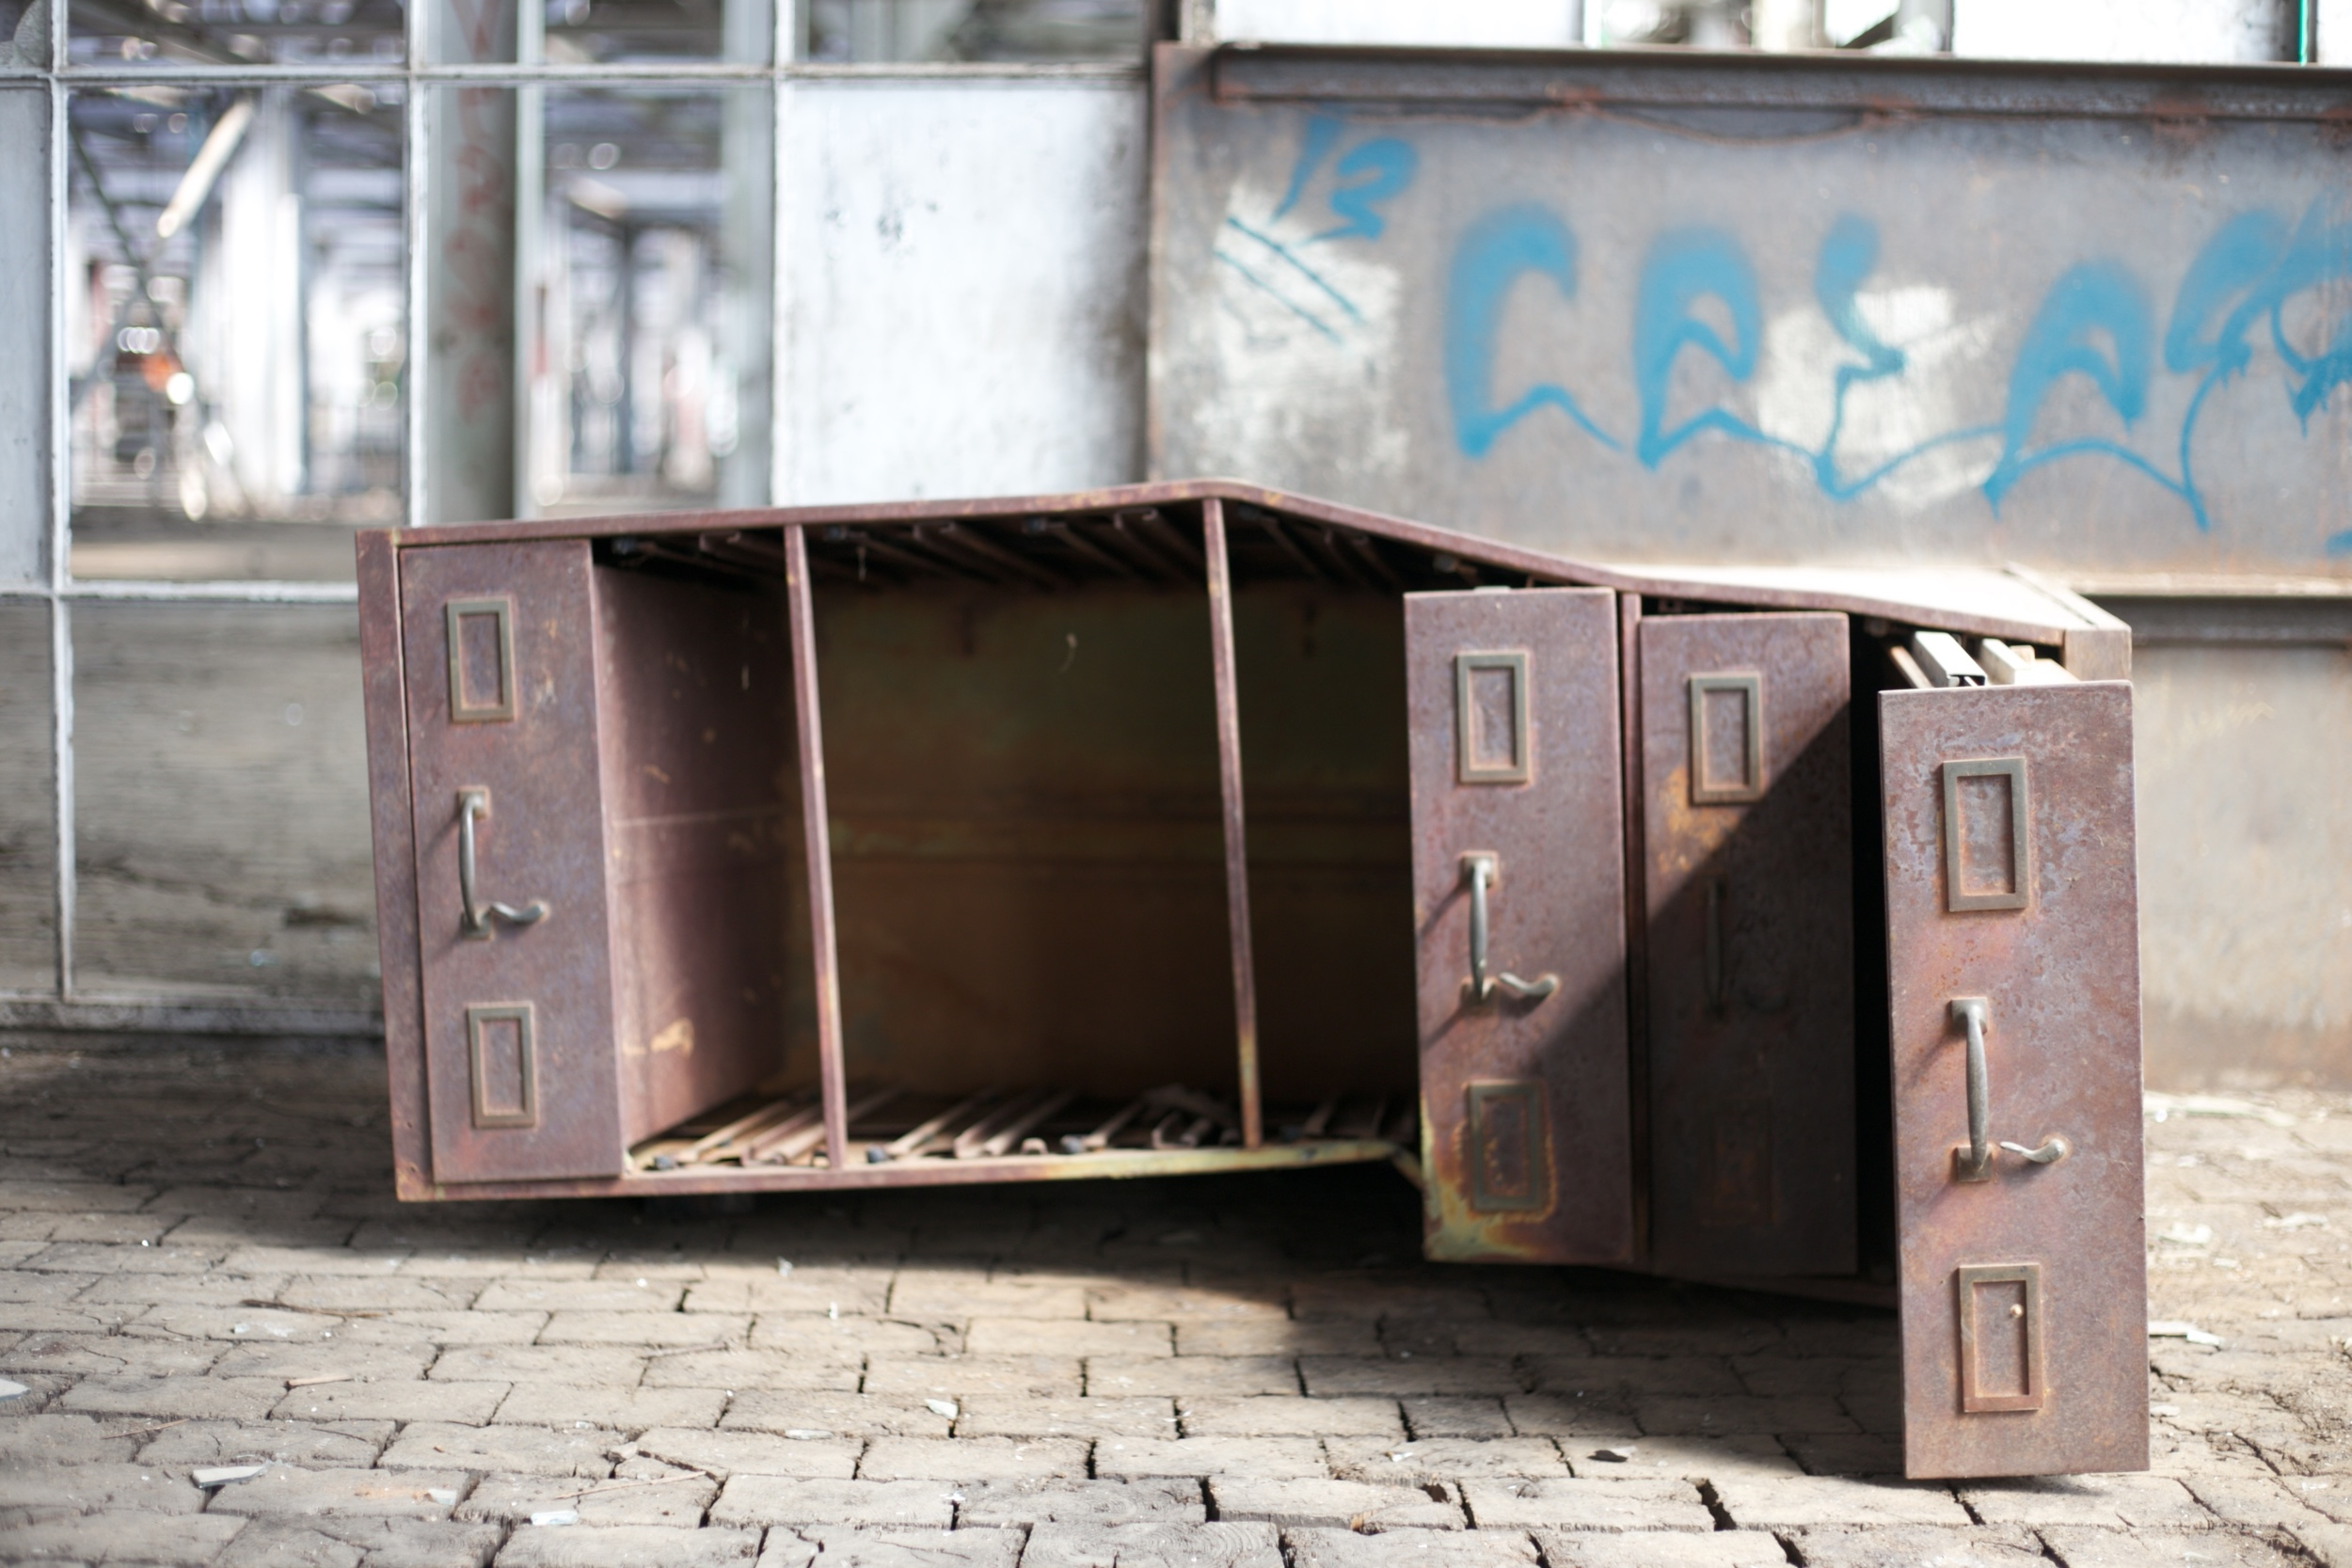 An old filing cabinet at the Rail Yards in Albuquerque.